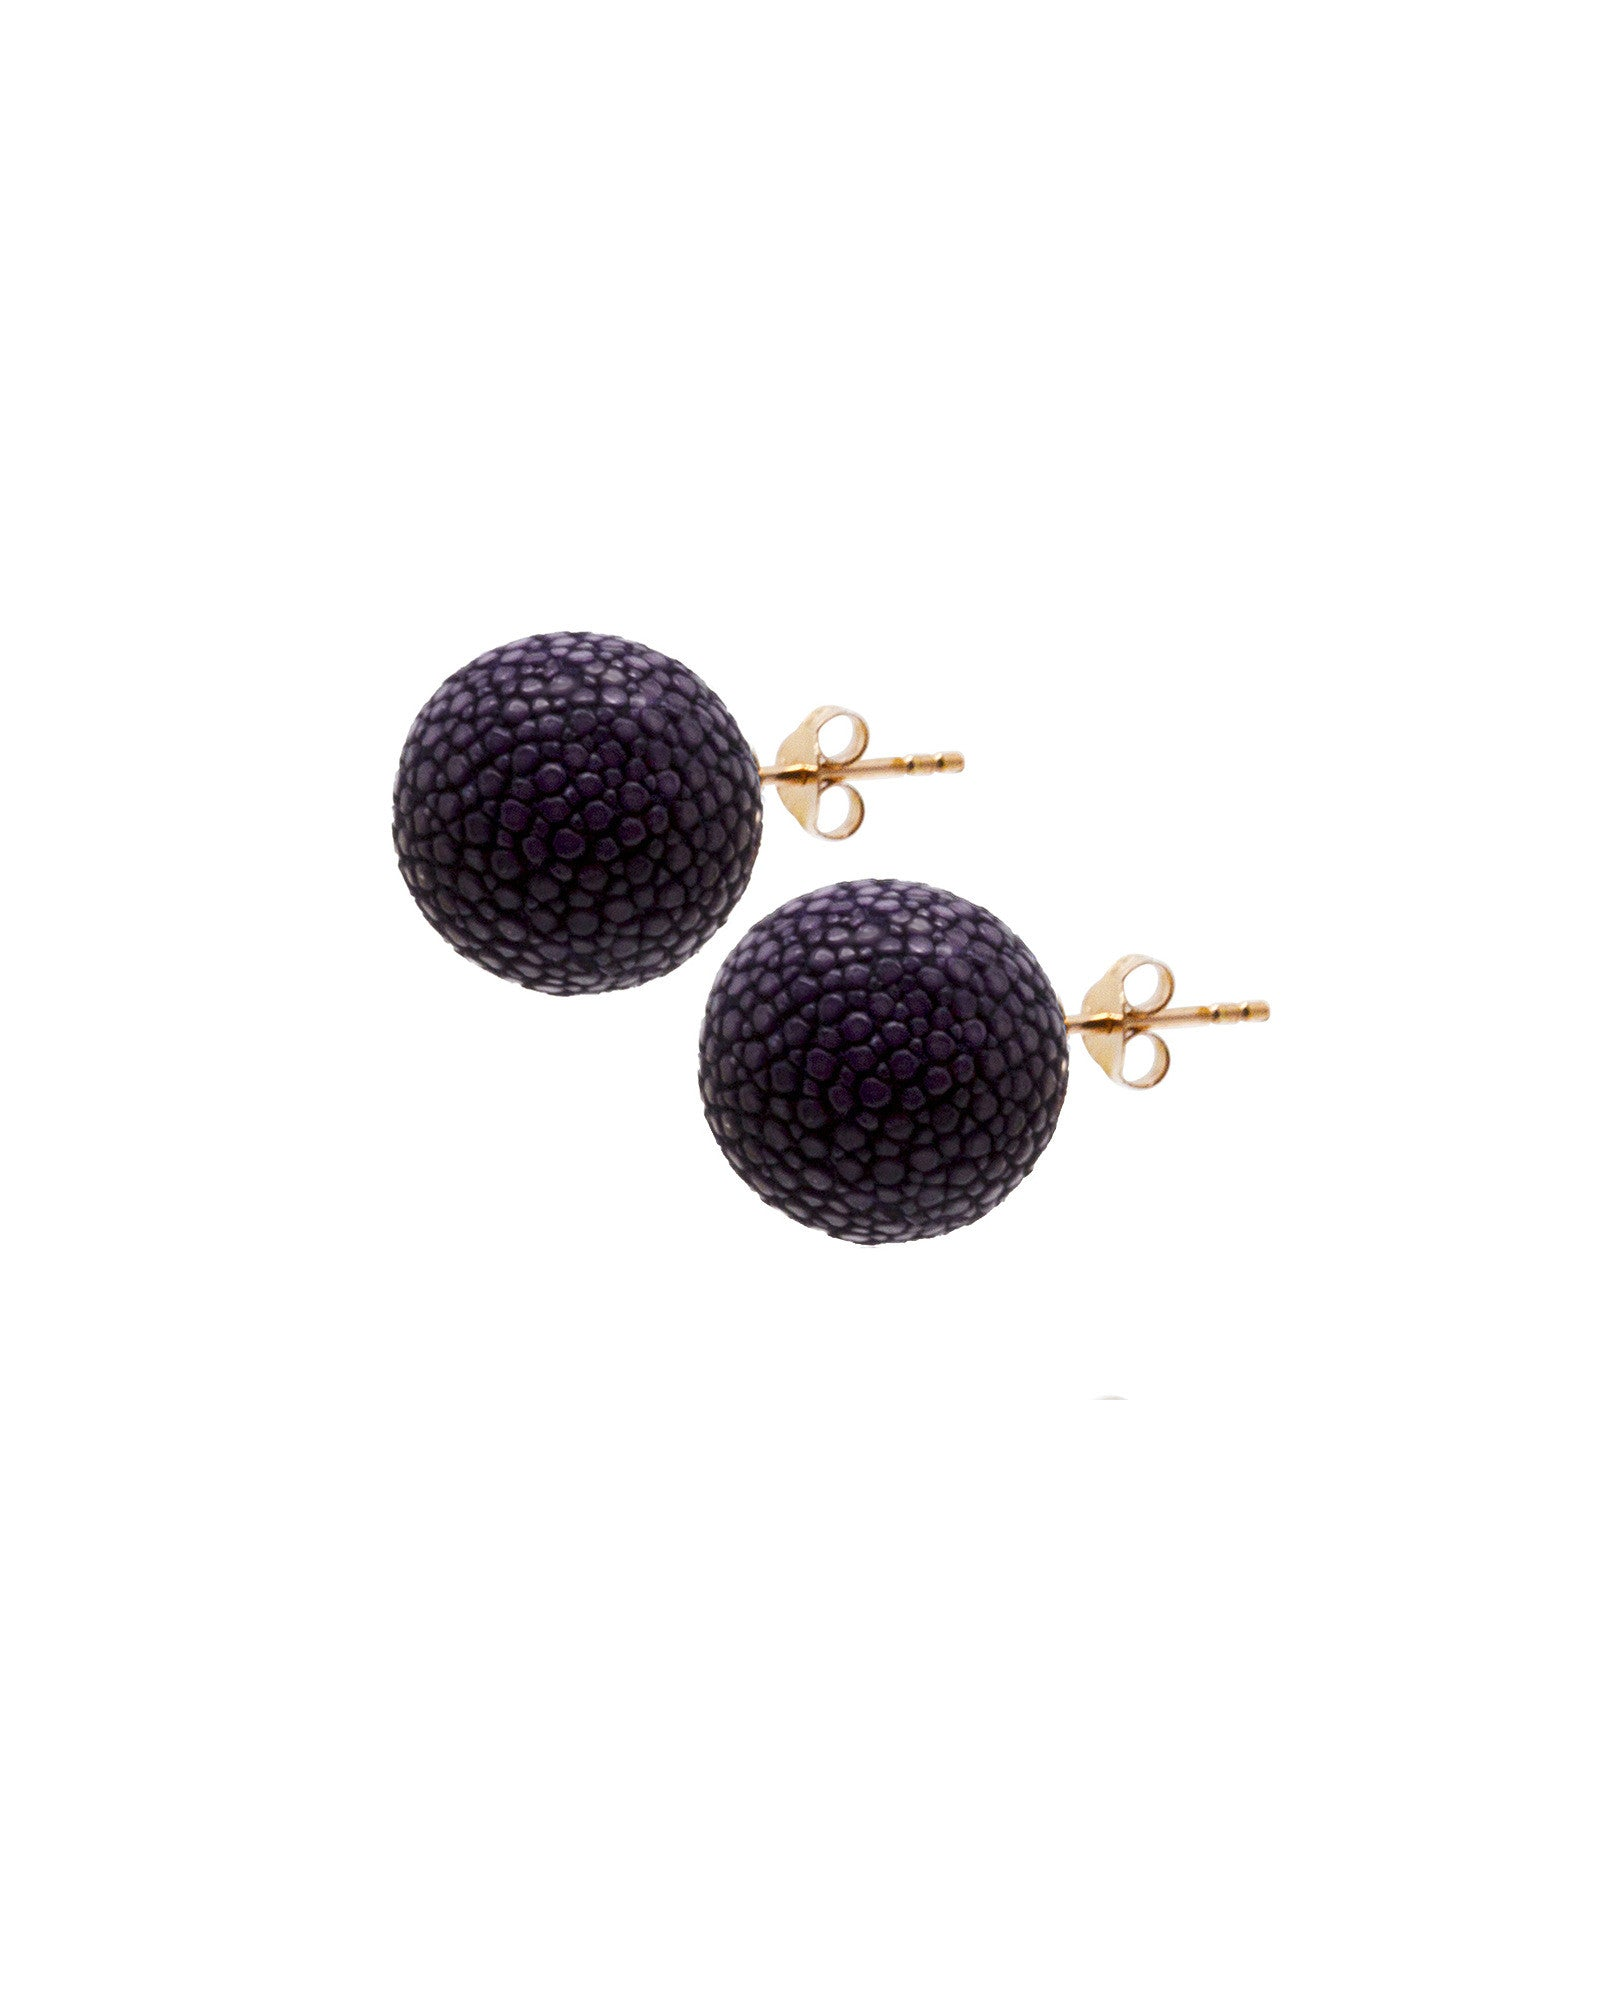 Elan Bijoux - Violet Stud Earrings - The Velvet Closet